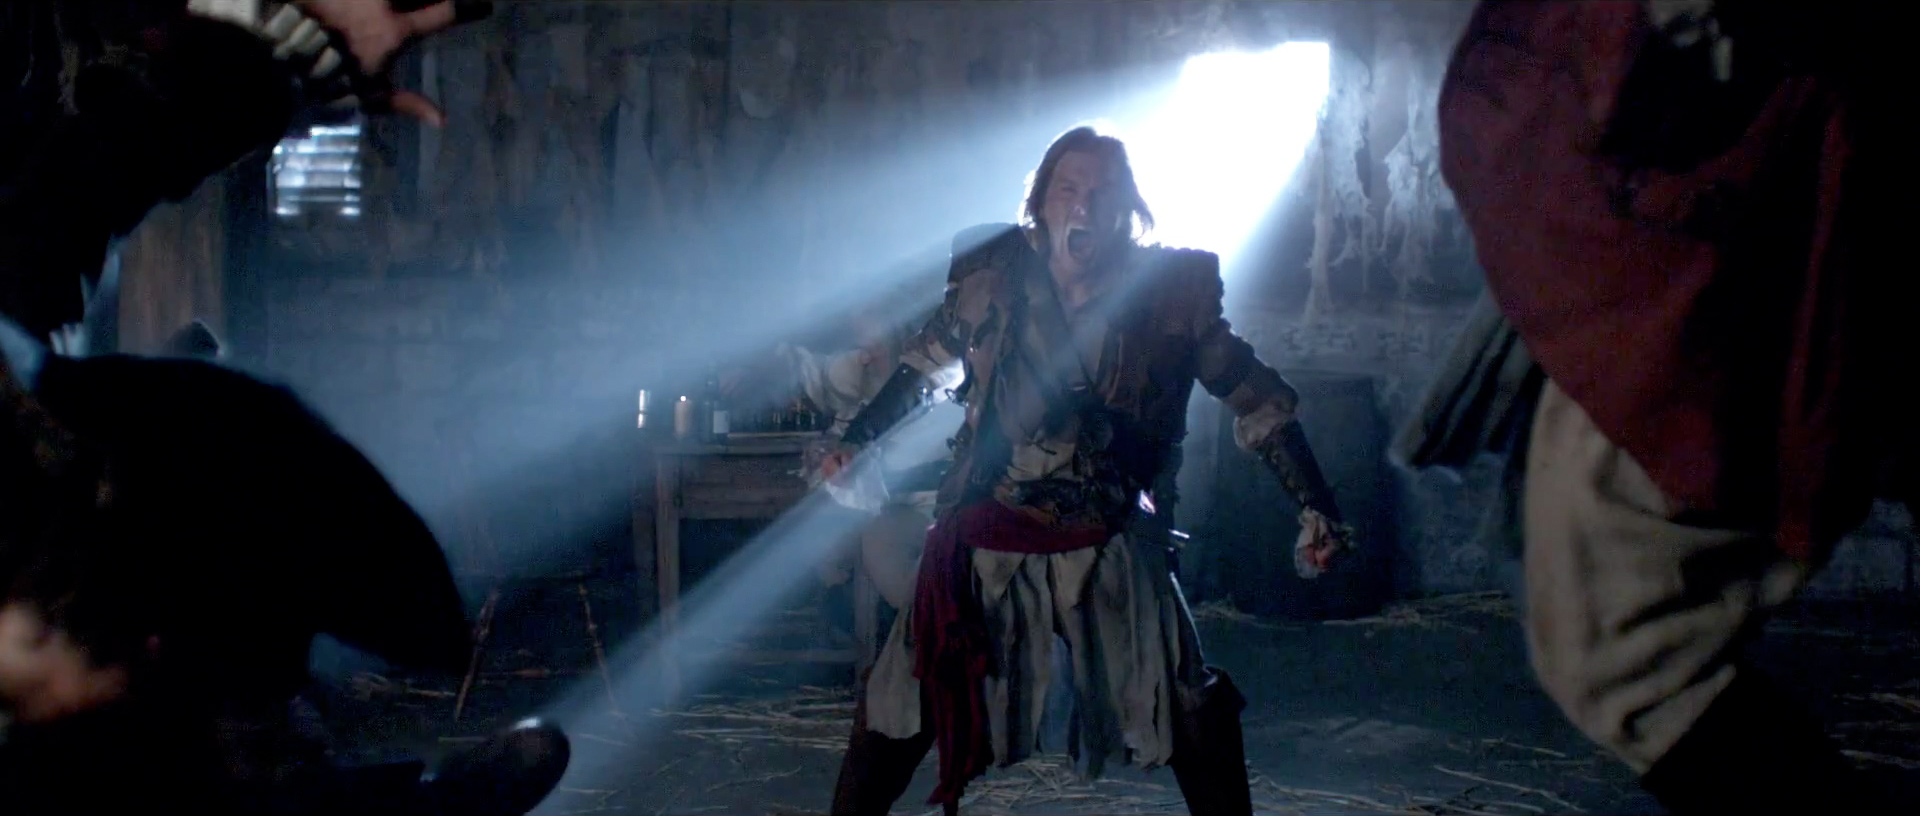 awesome-assassins-creed-short-film-checkmate-15.jpg